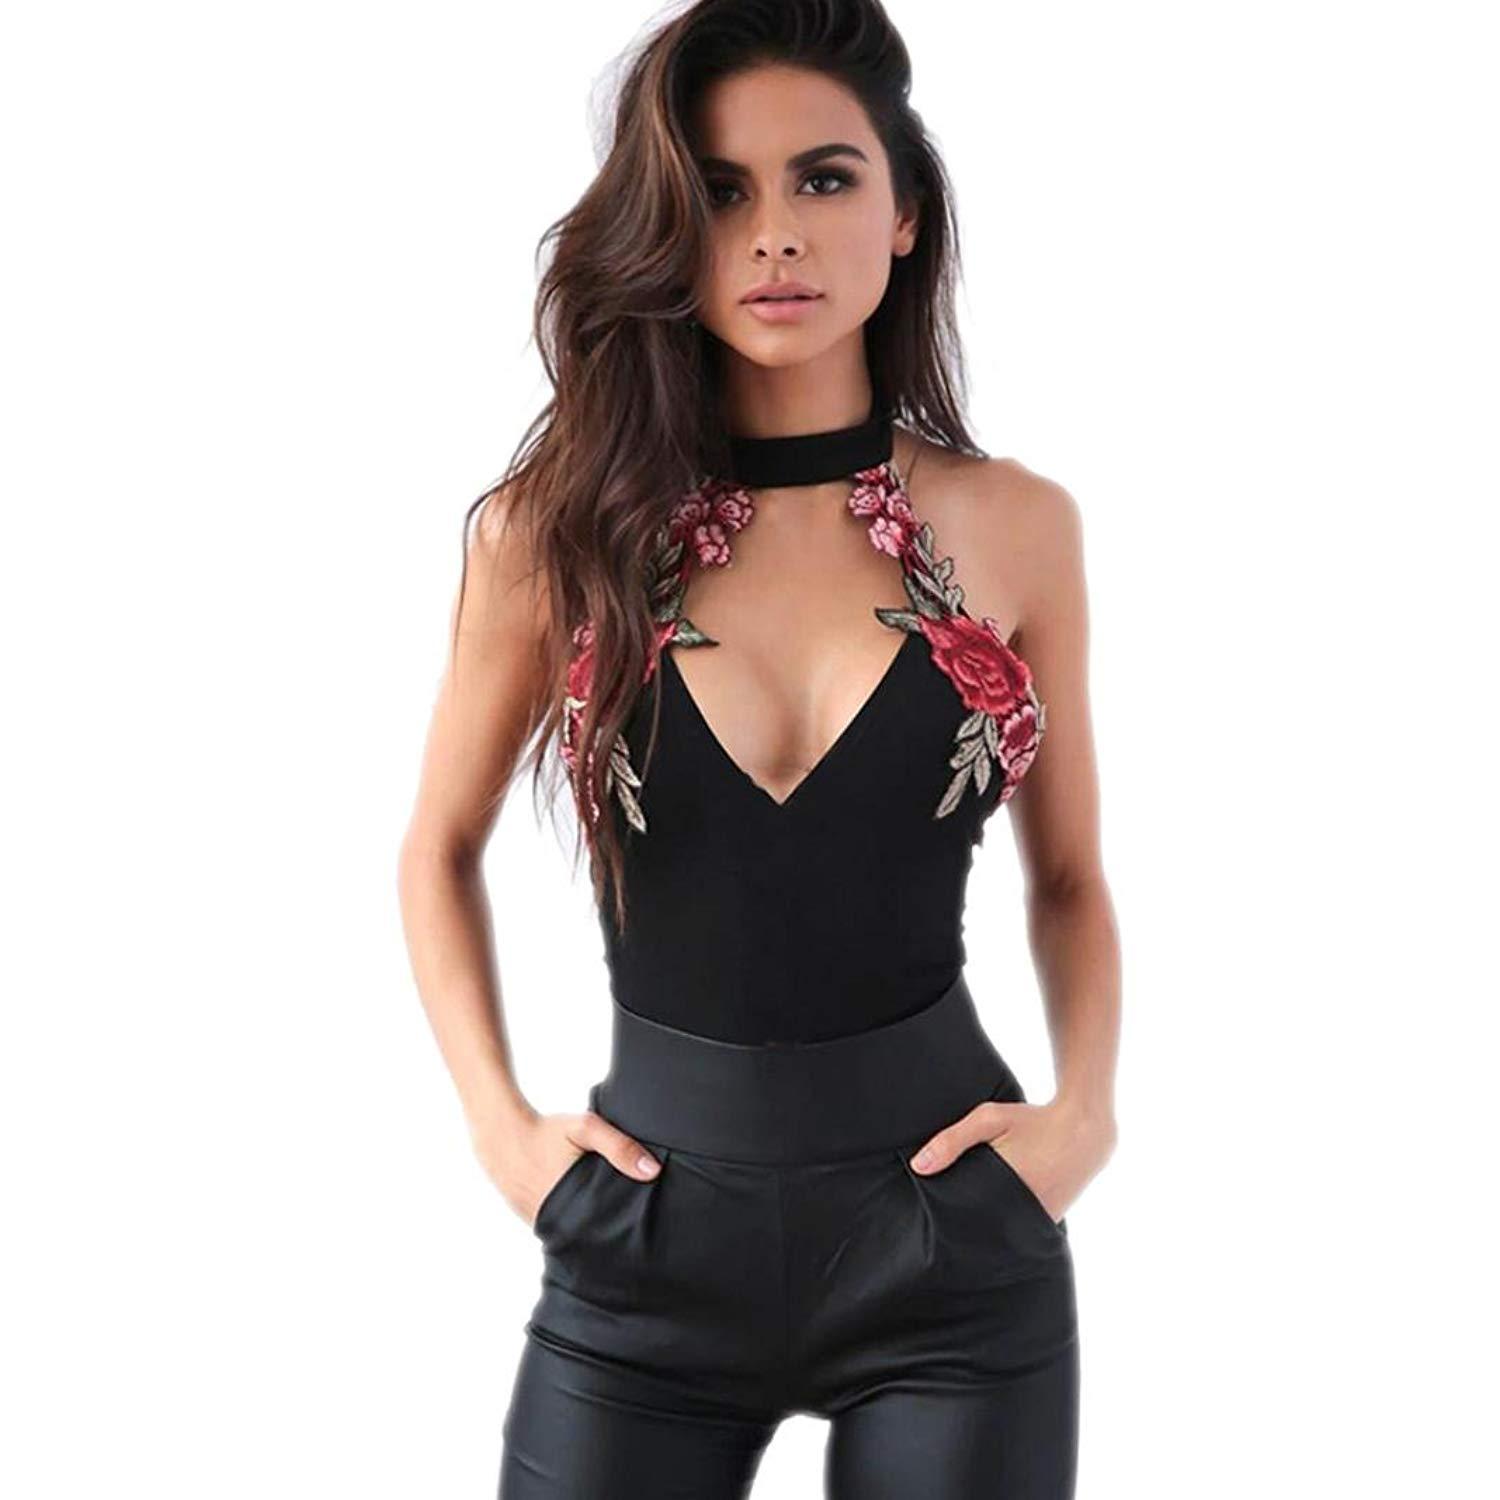 39b910b65a88 Get Quotations · Women Clubwear Embroidered Jumpsuit Romper Halter Sleeveless  Bodysuits